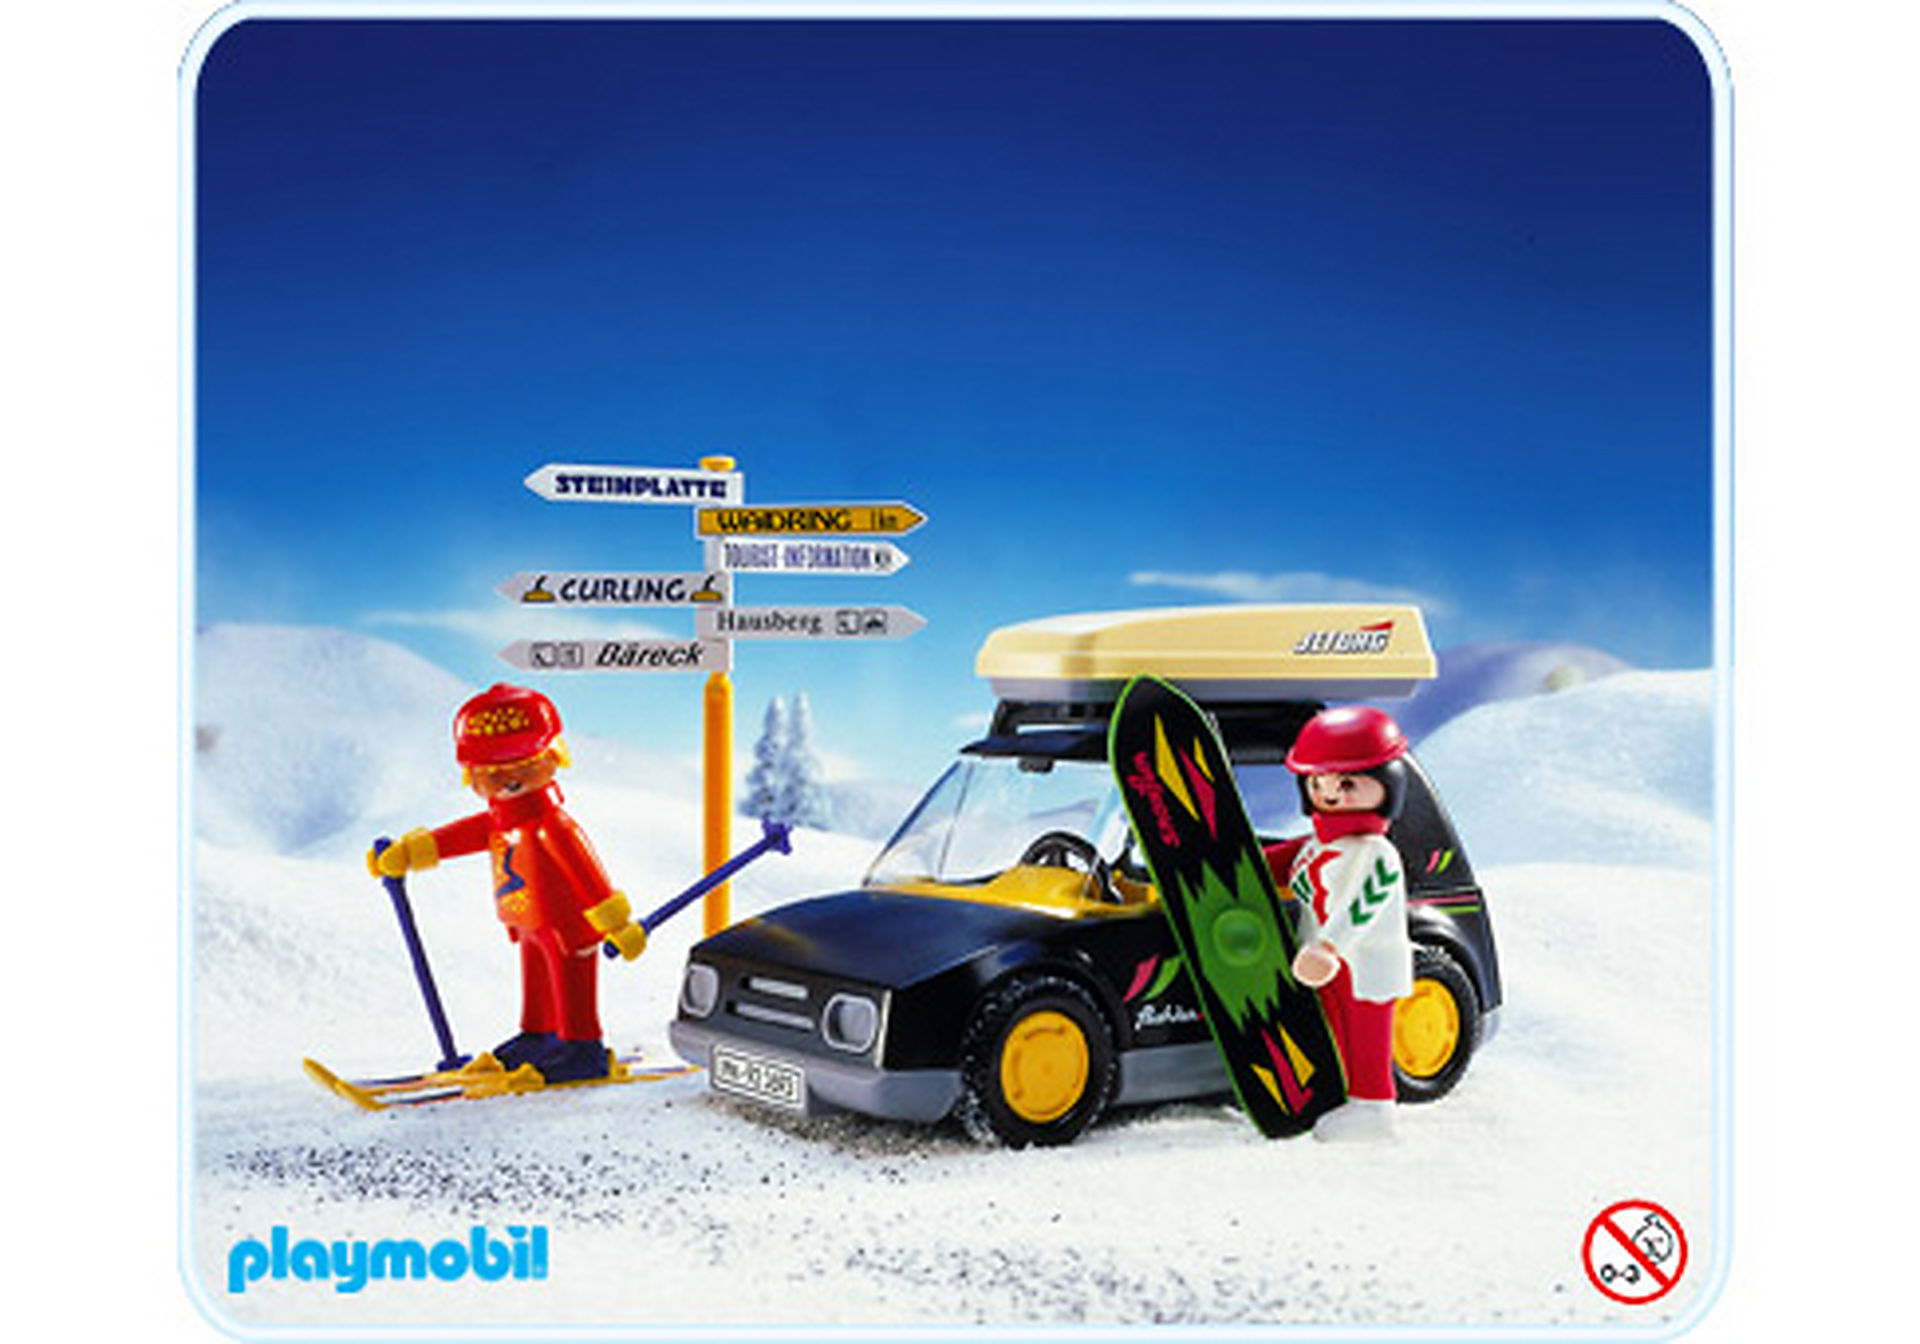 http://media.playmobil.com/i/playmobil/3693-A_product_detail/Voiture / coffre à skis